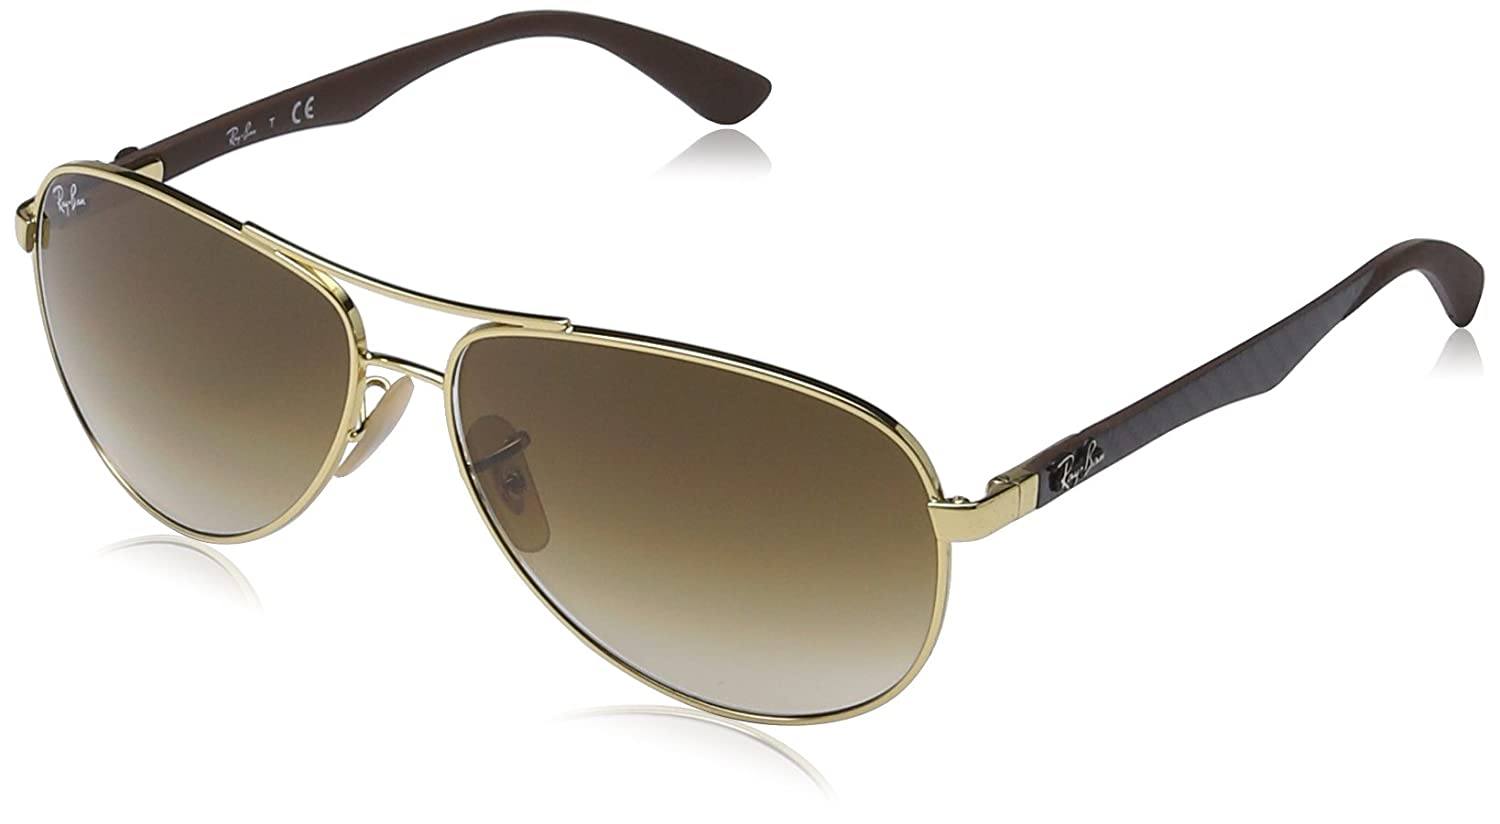 ray ban glasses slipping  amazon: ray ban men's carbon fibre 0rb8313 aviator sunglasses, arista, 58 mm: ray ban: clothing